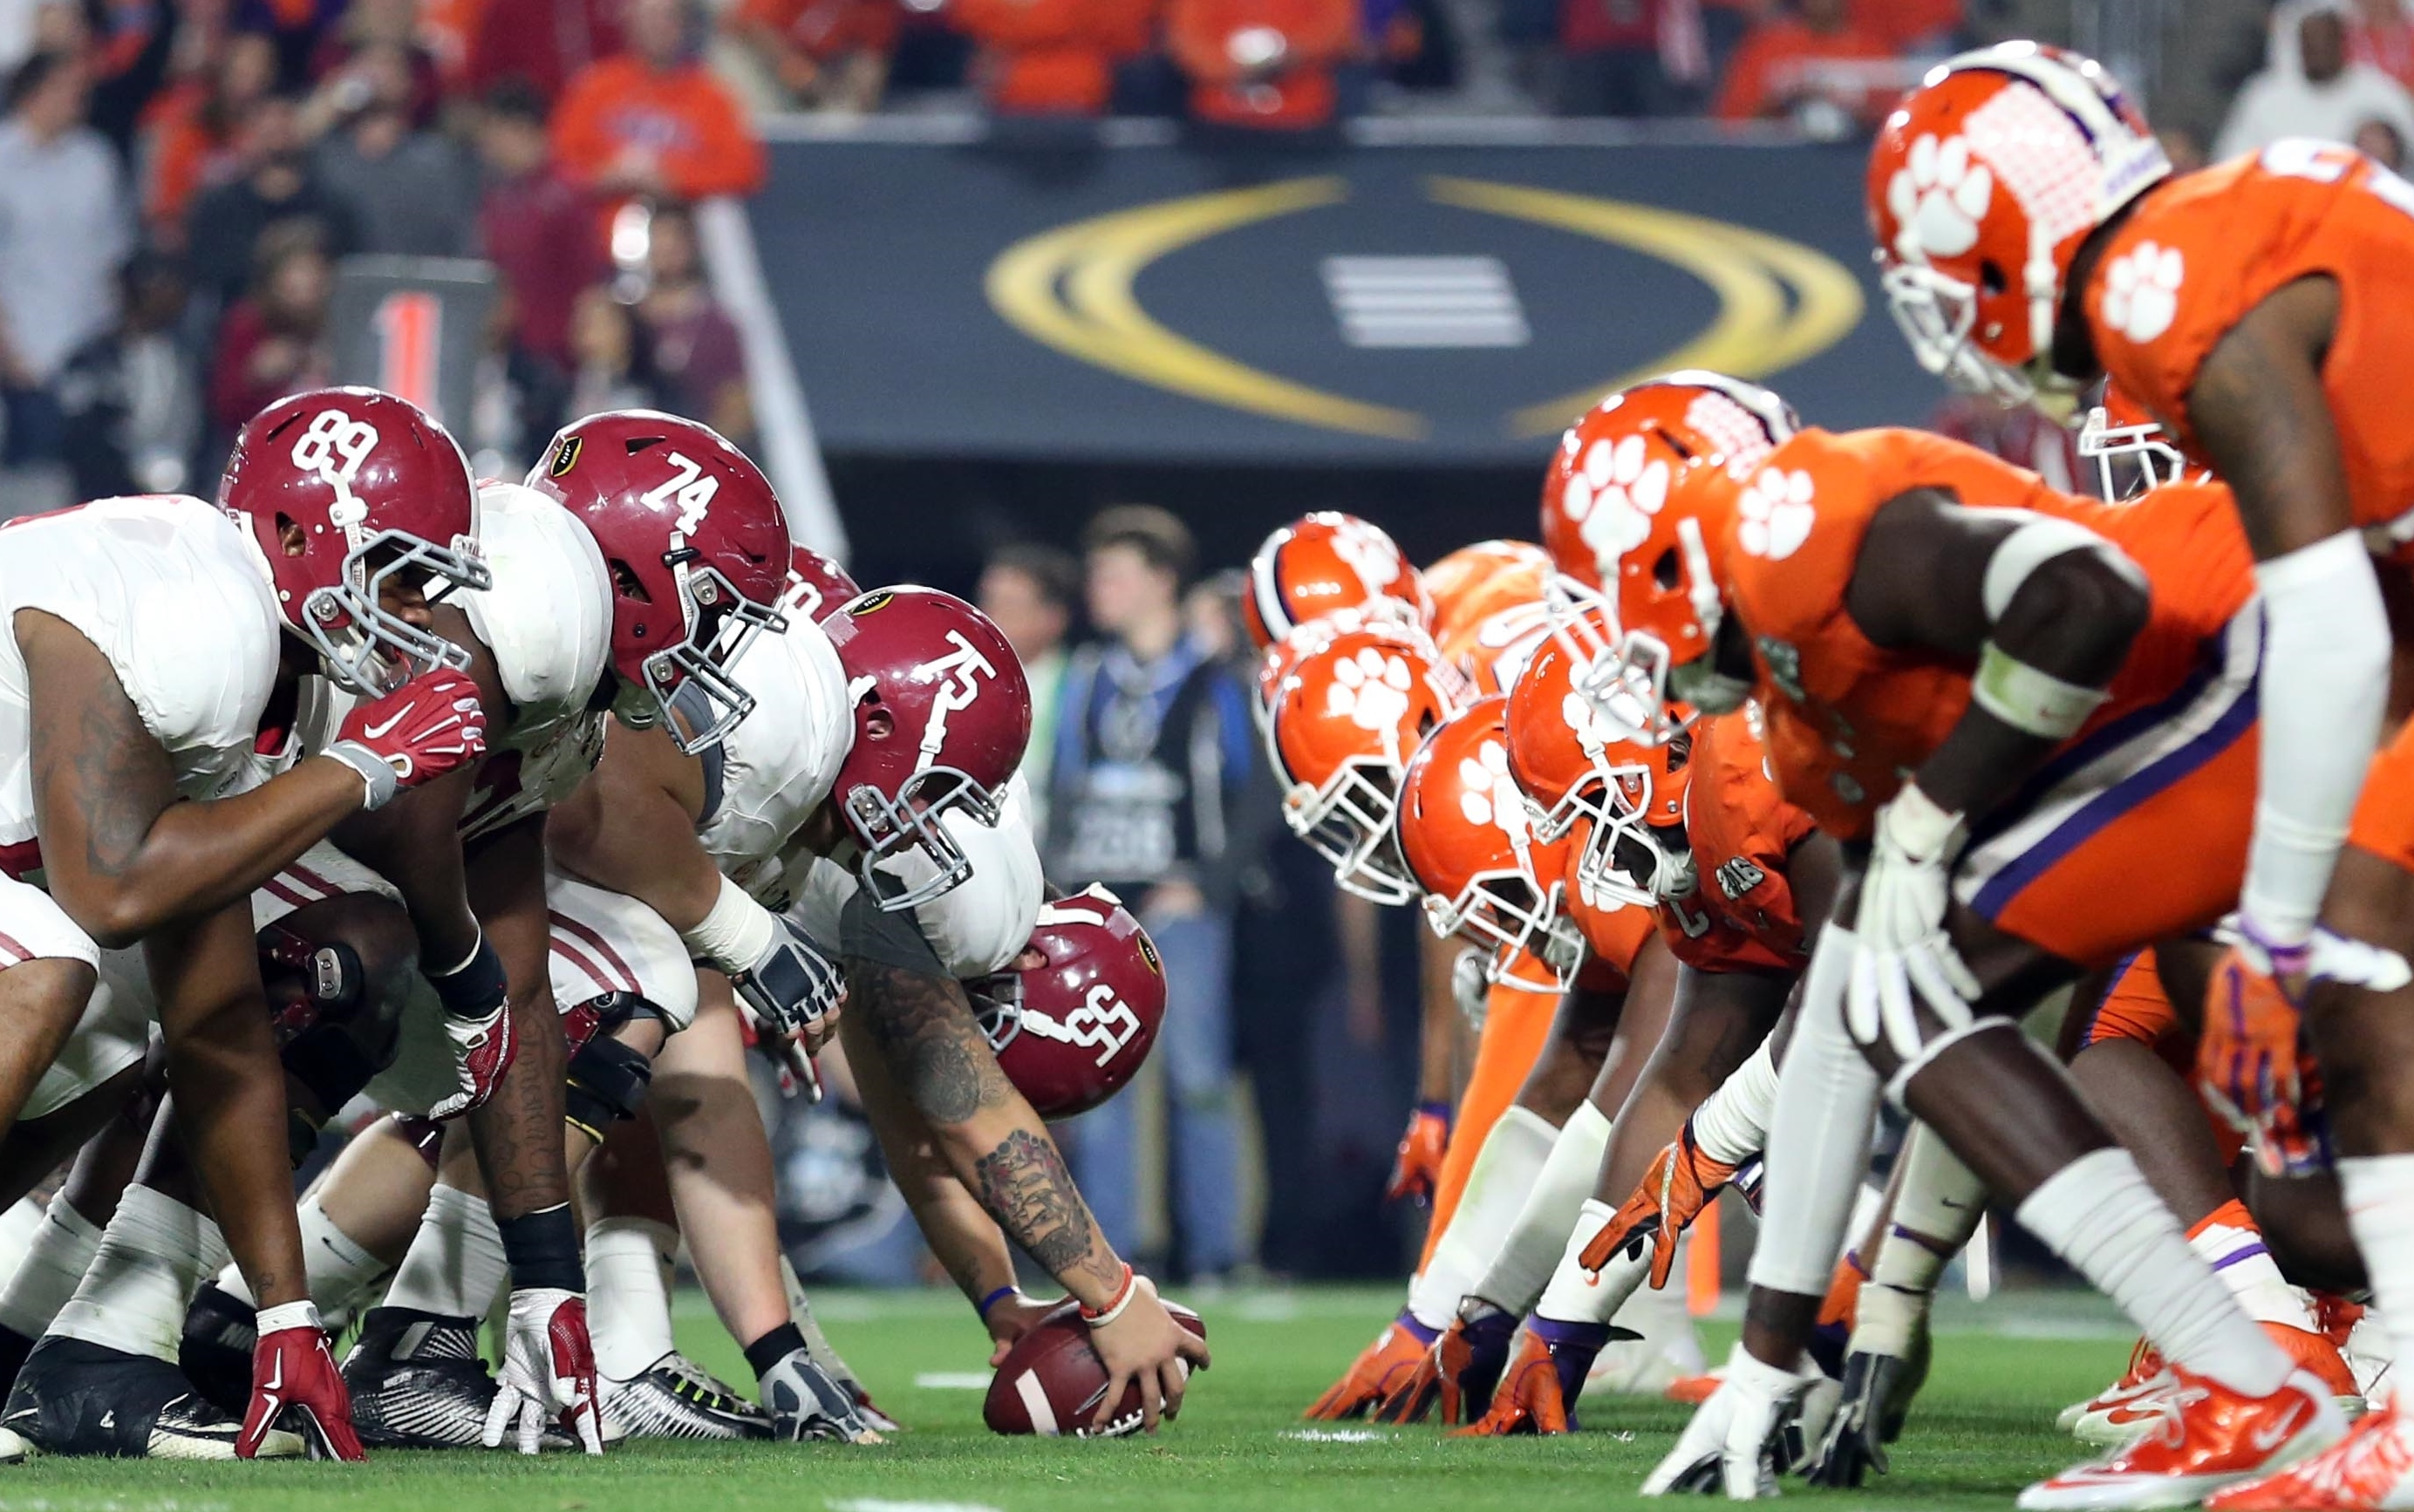 Jan 11, 2016; Glendale, AZ, USA; Alabama Crimson Tide and Clemson Tigers players line up before a snap in the third quarter in the 2016 CFP National Championship at University of Phoenix Stadium. Mandatory Credit: Mark J. Rebilas-USA TODAY Sports